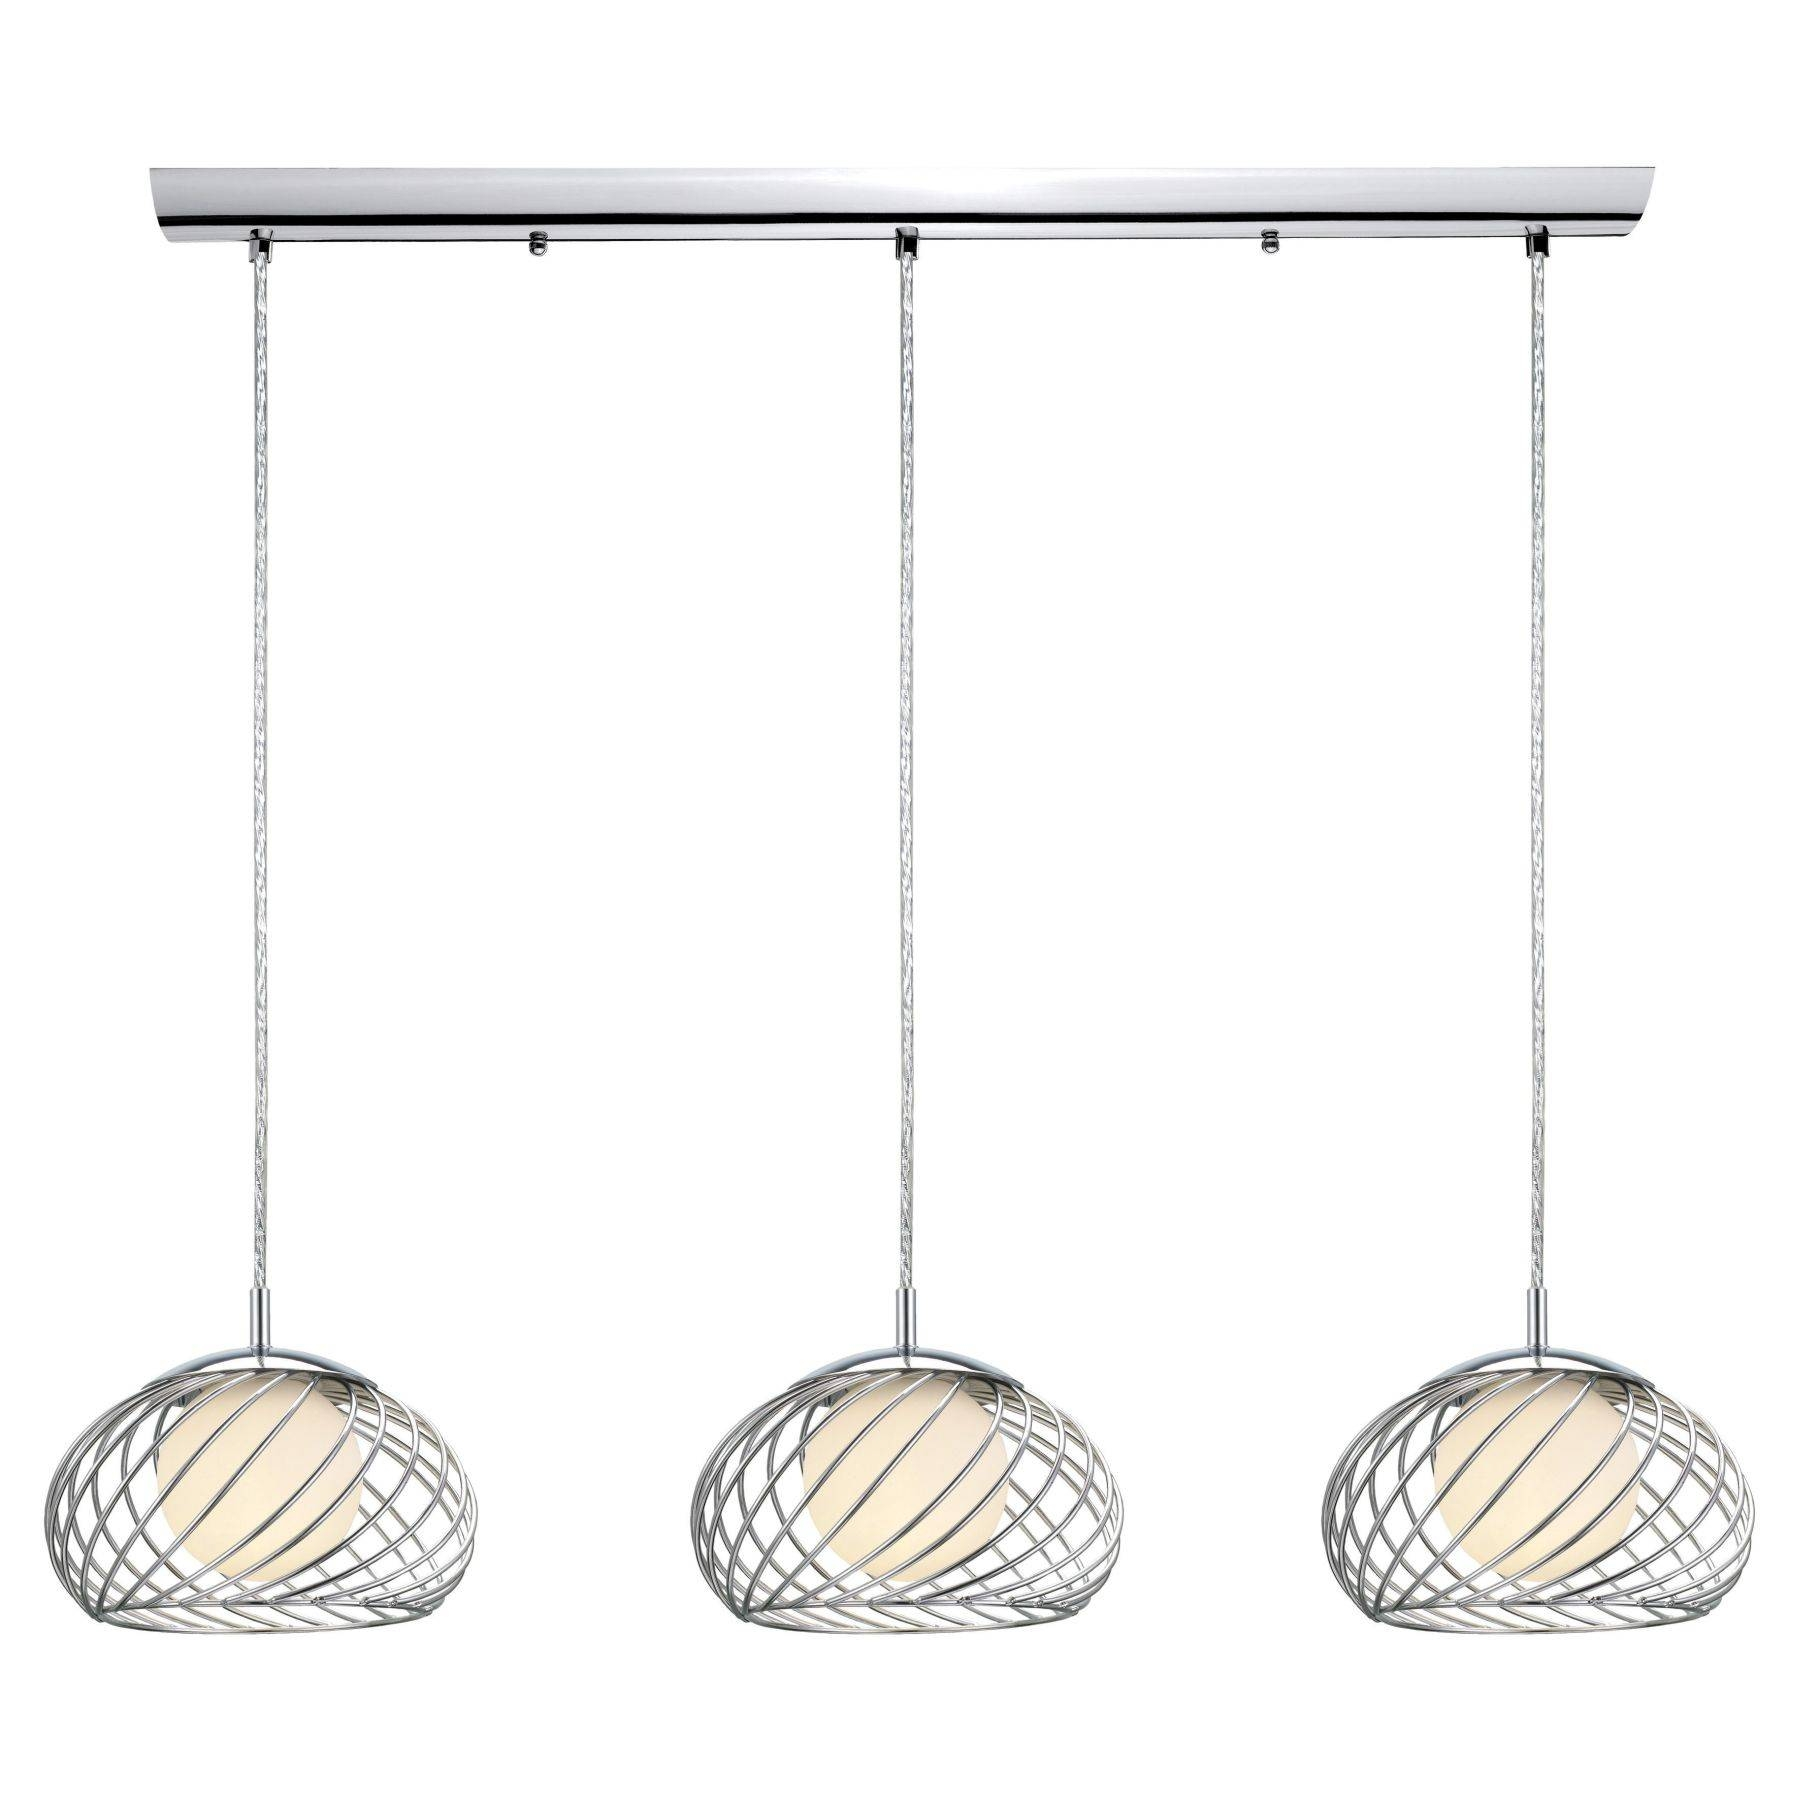 Home Lighting : Drop Dead Gorgeous Hanging Lantern Landscape Light With Regard To Lights Shades John Lewis Pendant Lights (View 14 of 15)